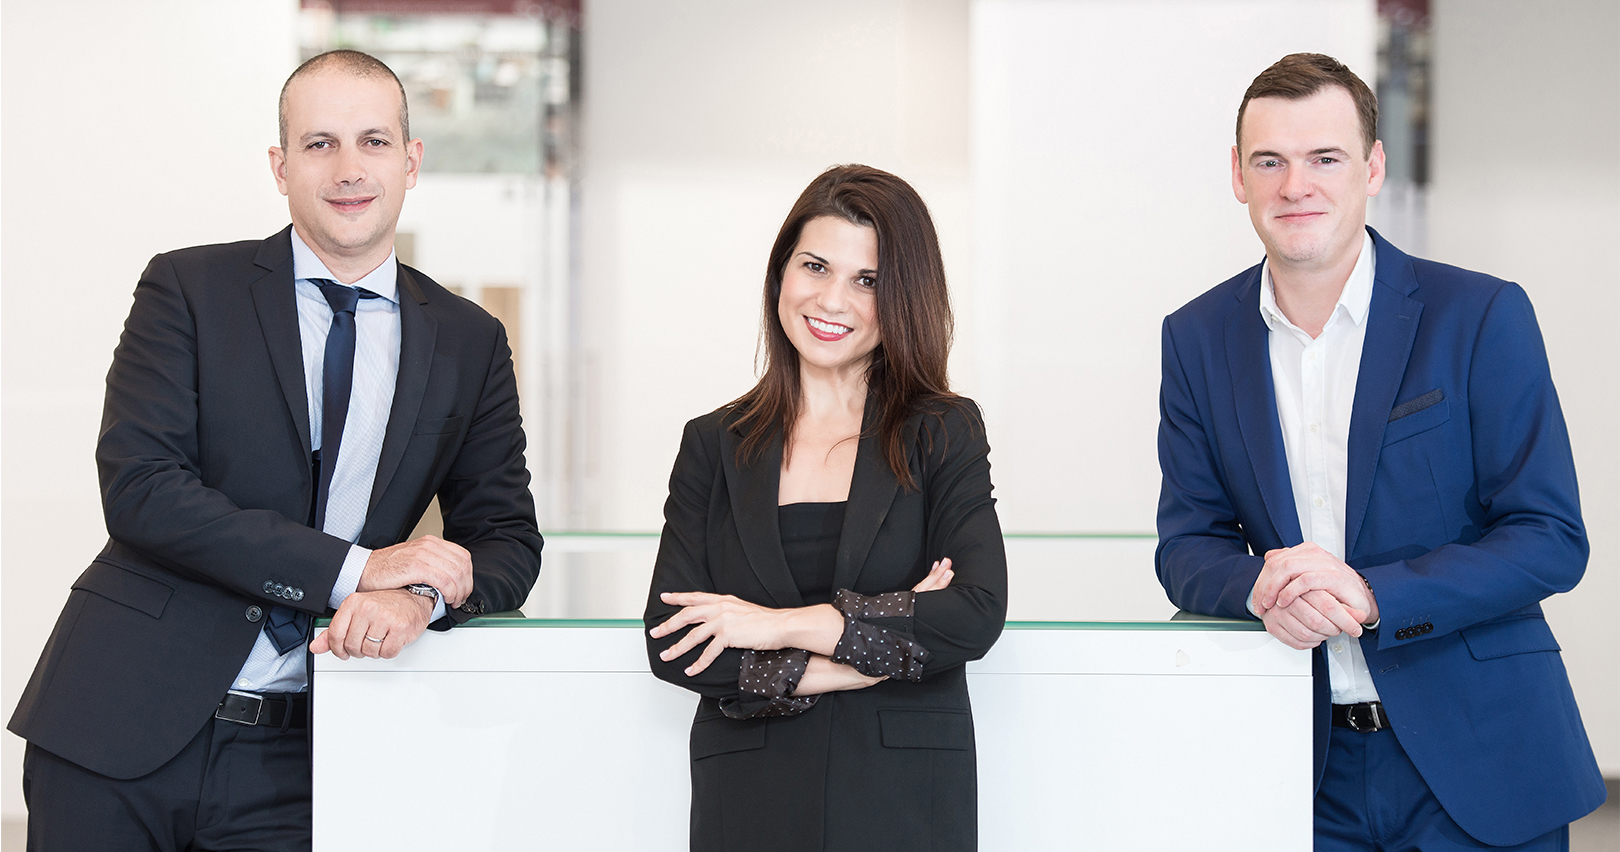 RAK Ceramics expands global sales and marketing team to support vital business functions